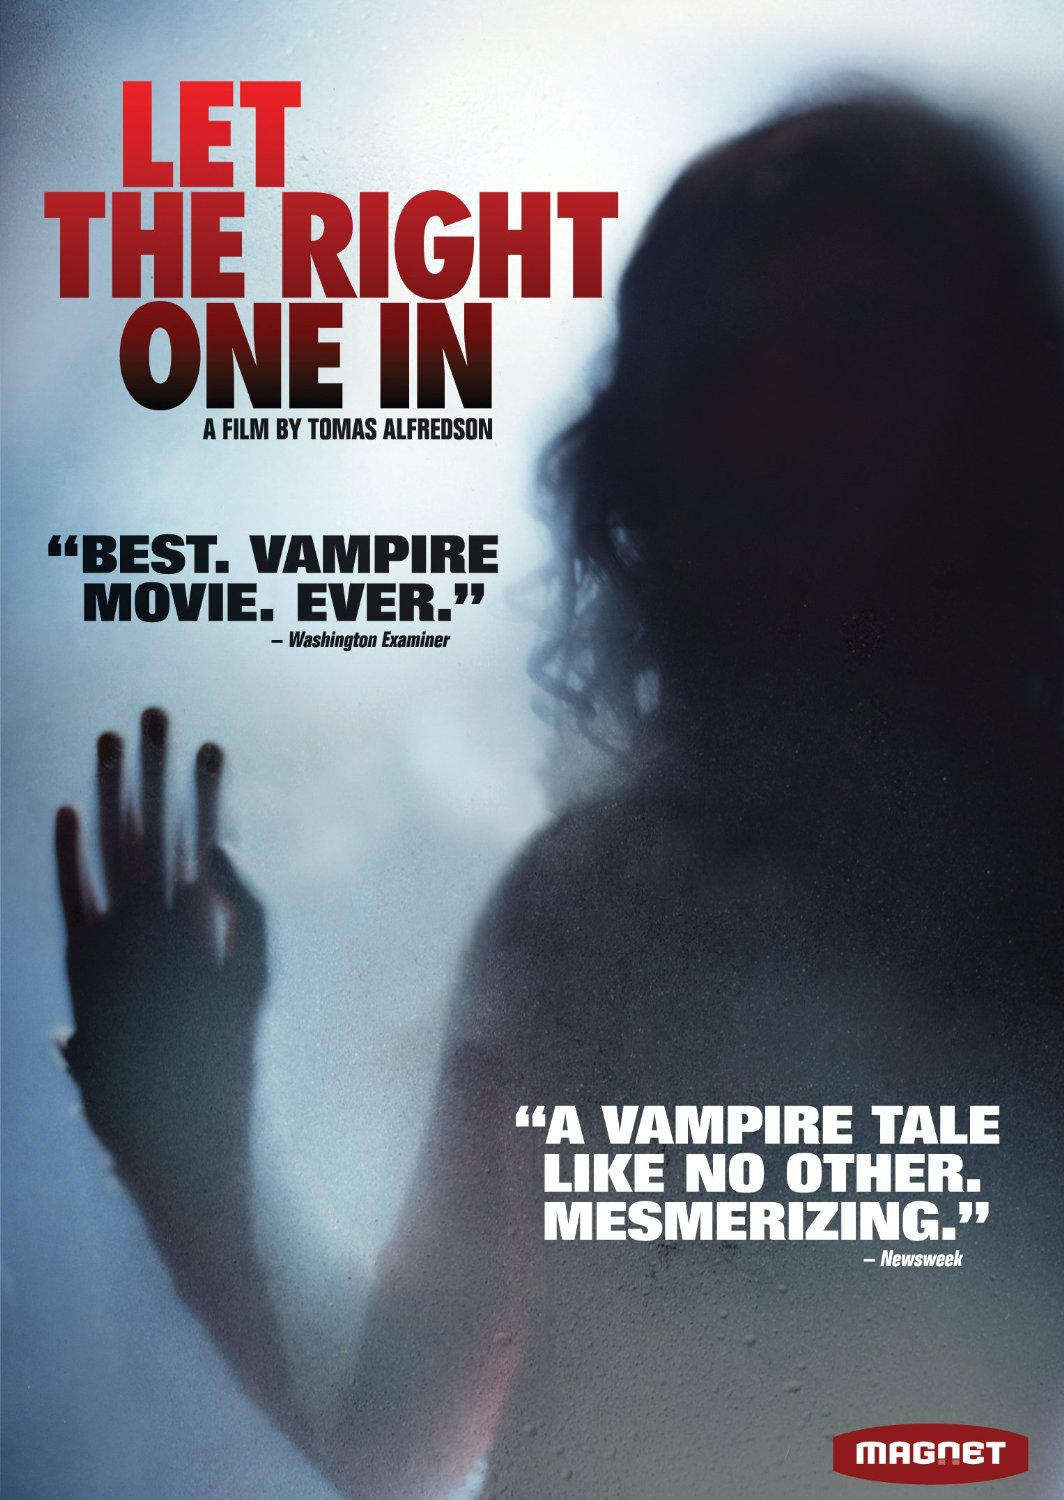 A&E Bringing Their Own Version Of 'Let The Right One In' To The Small Screen